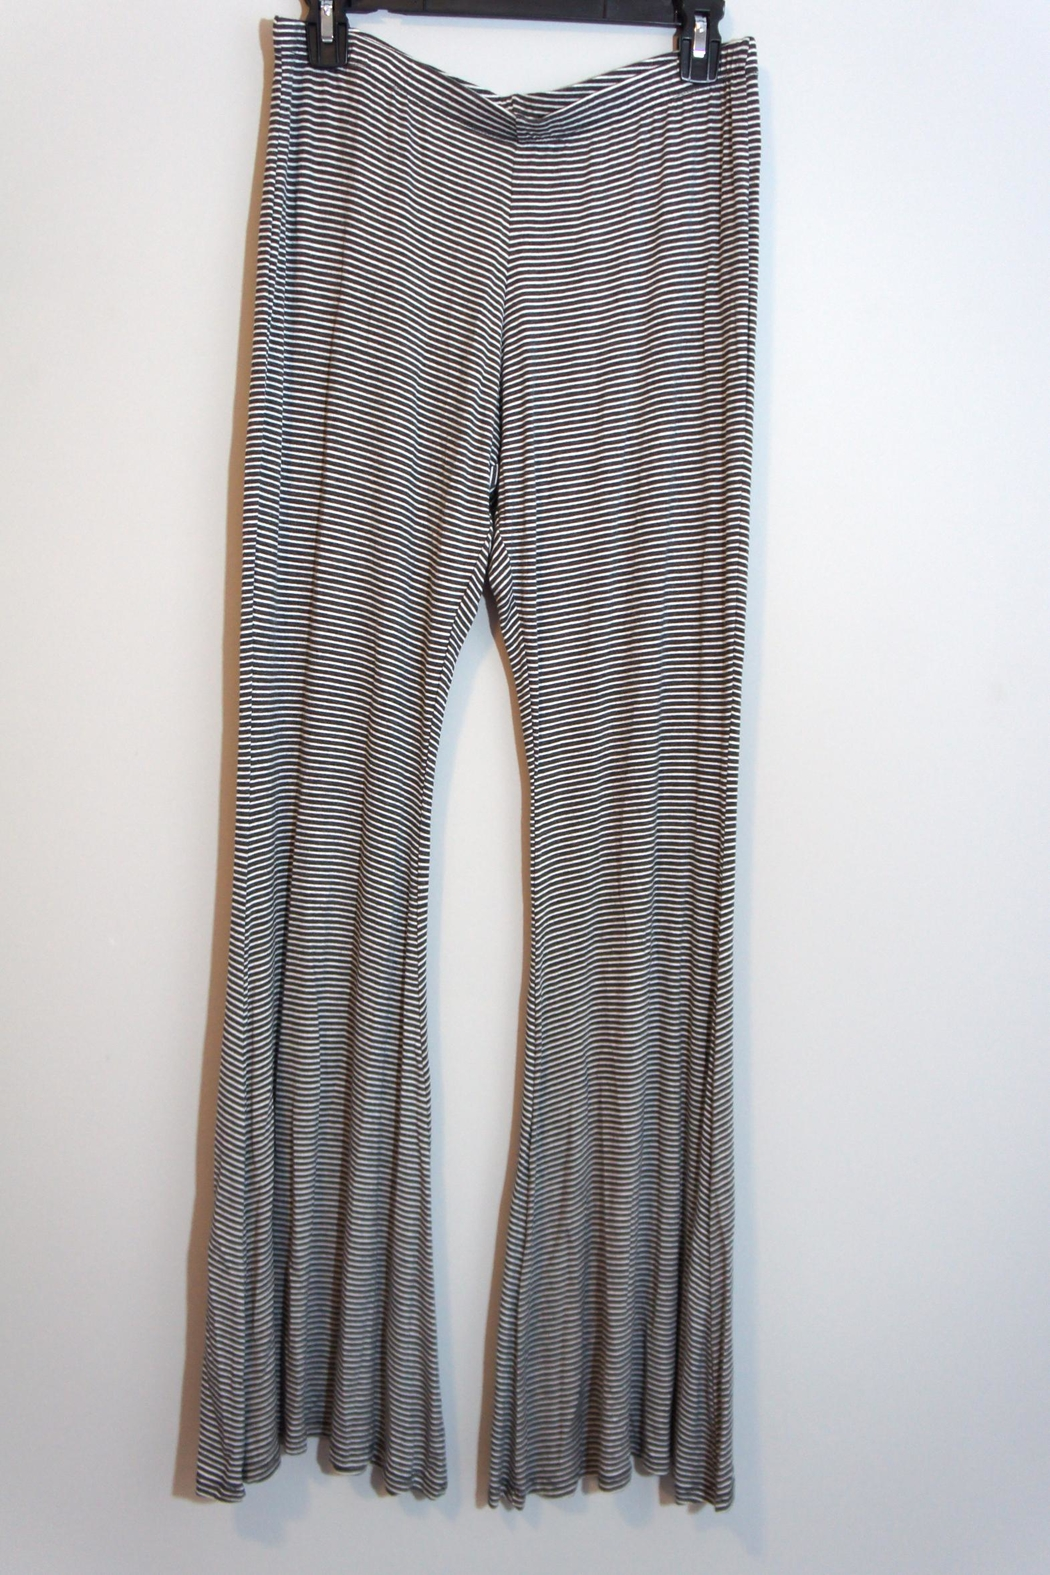 Uj Striped Palazzo Pants - Front Cropped Image